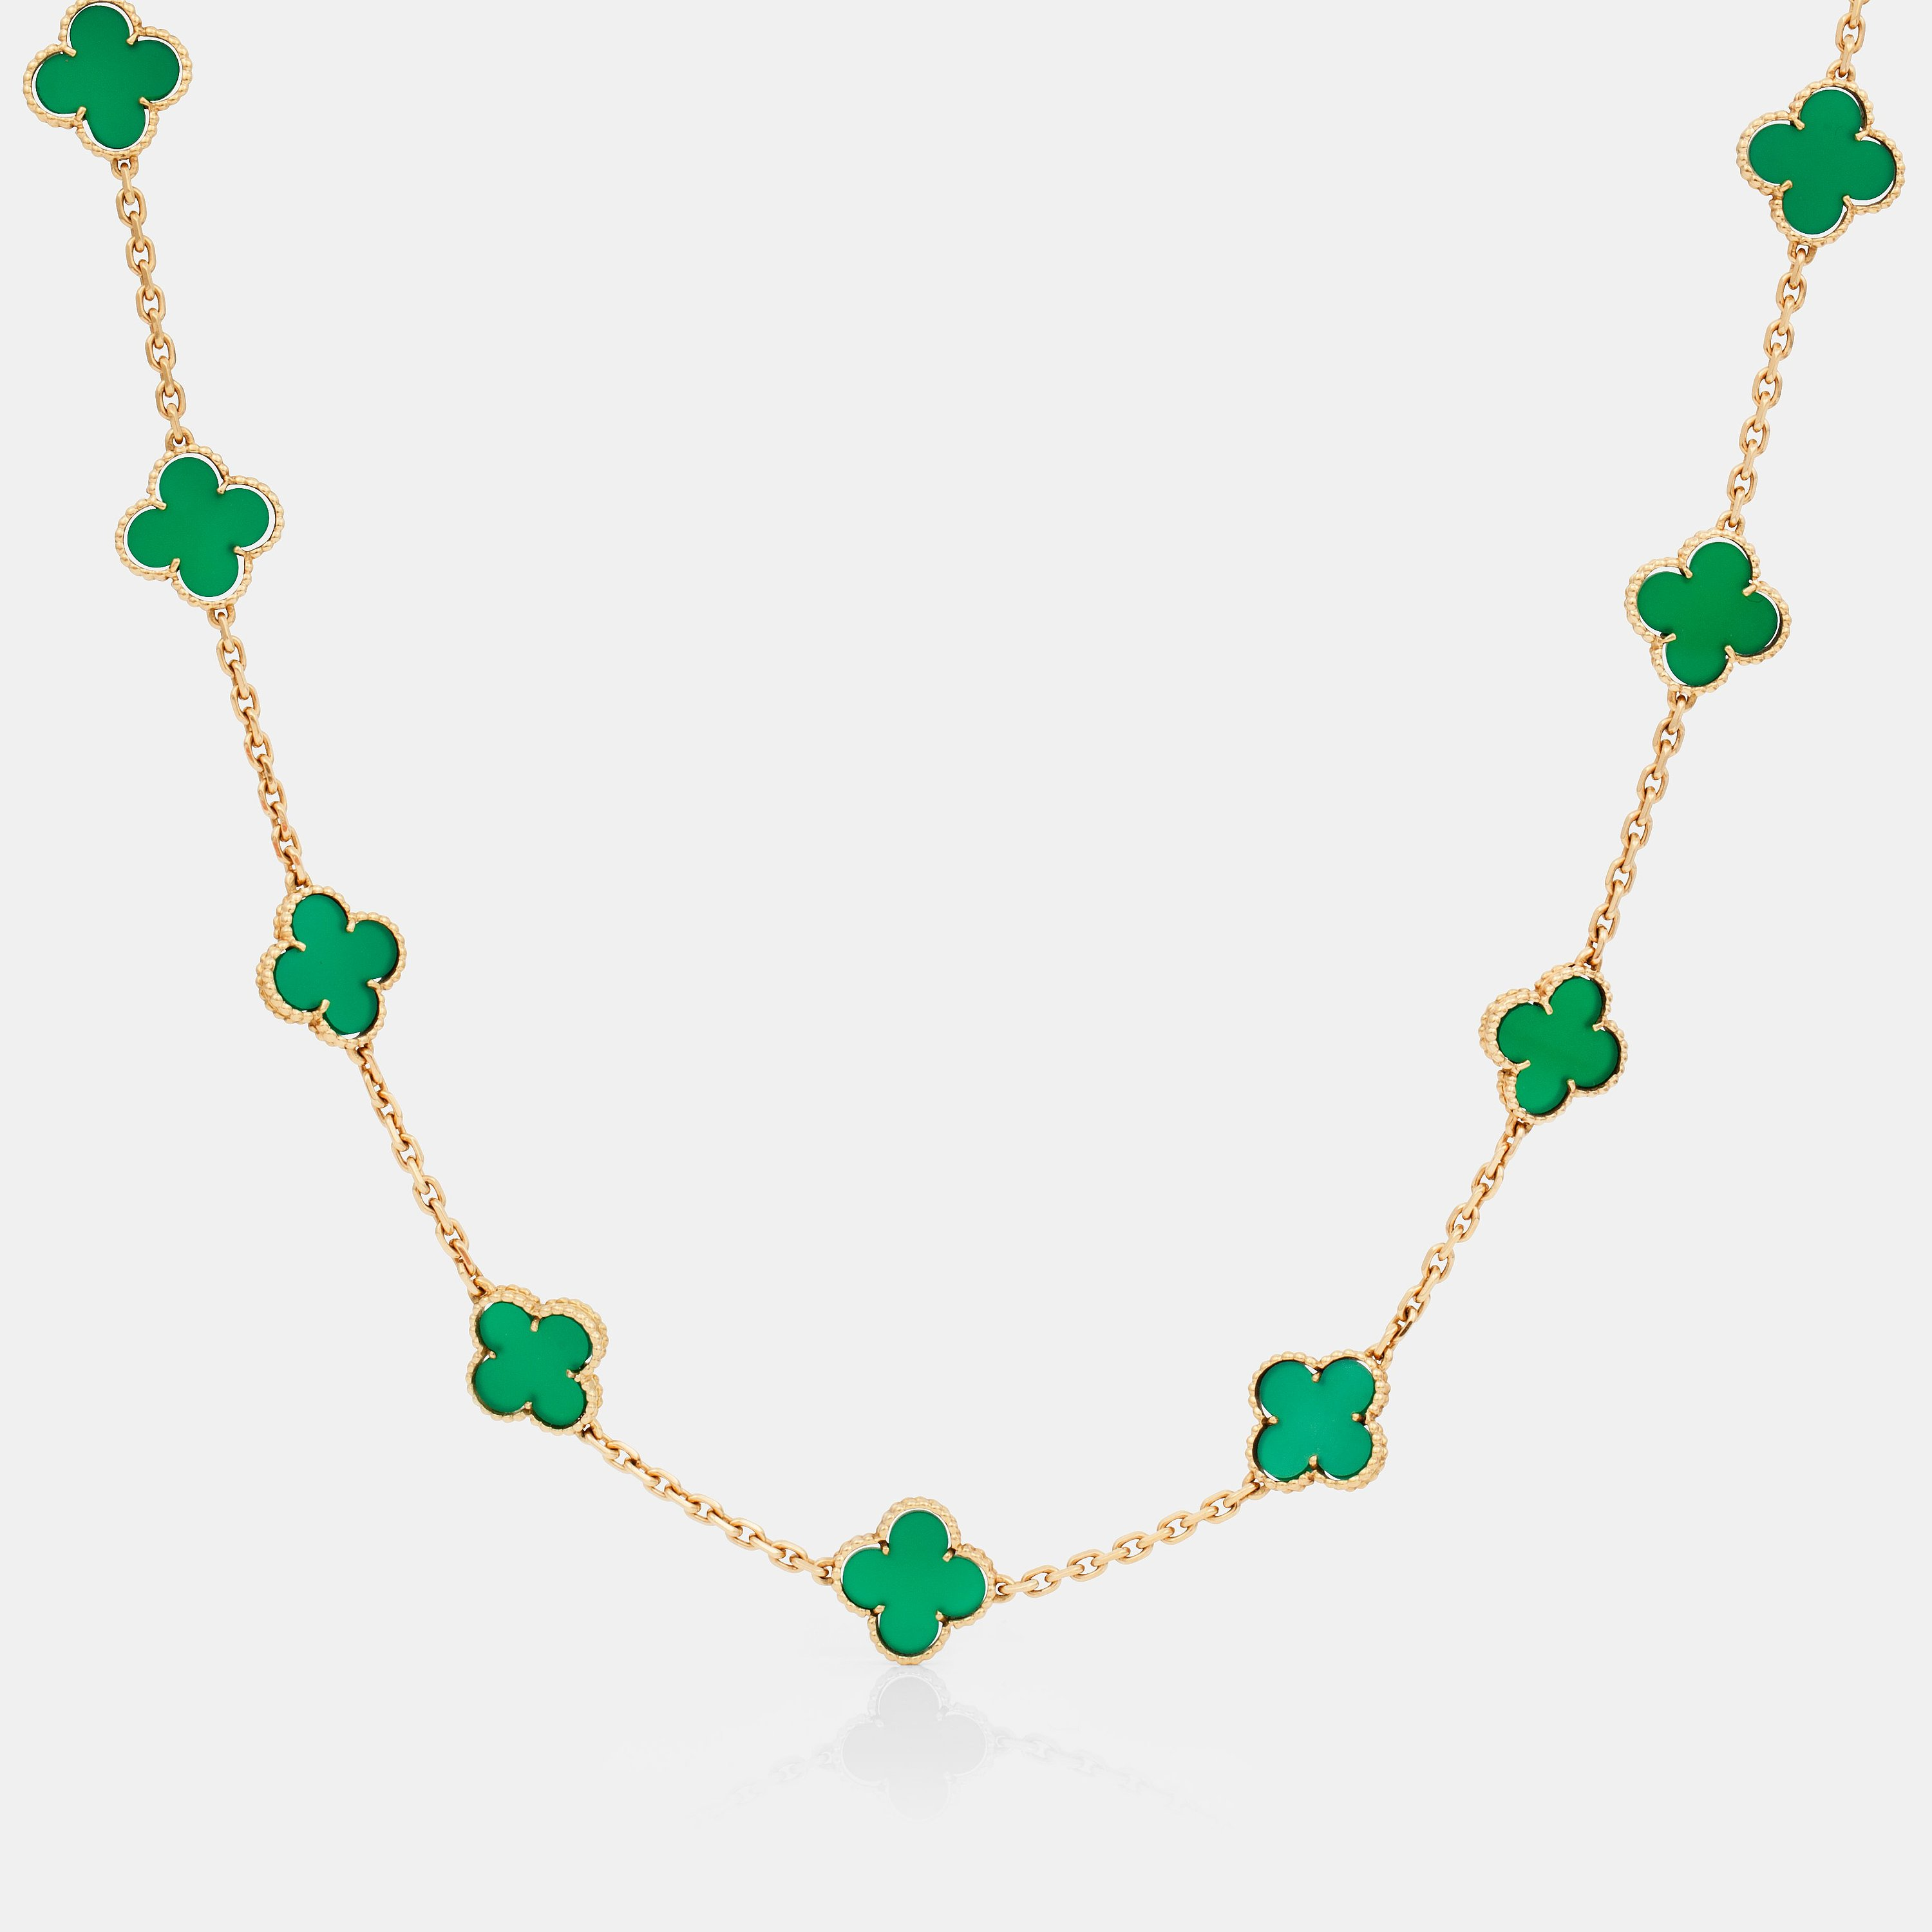 f70bb430866c A green chalcedony and 18K gold